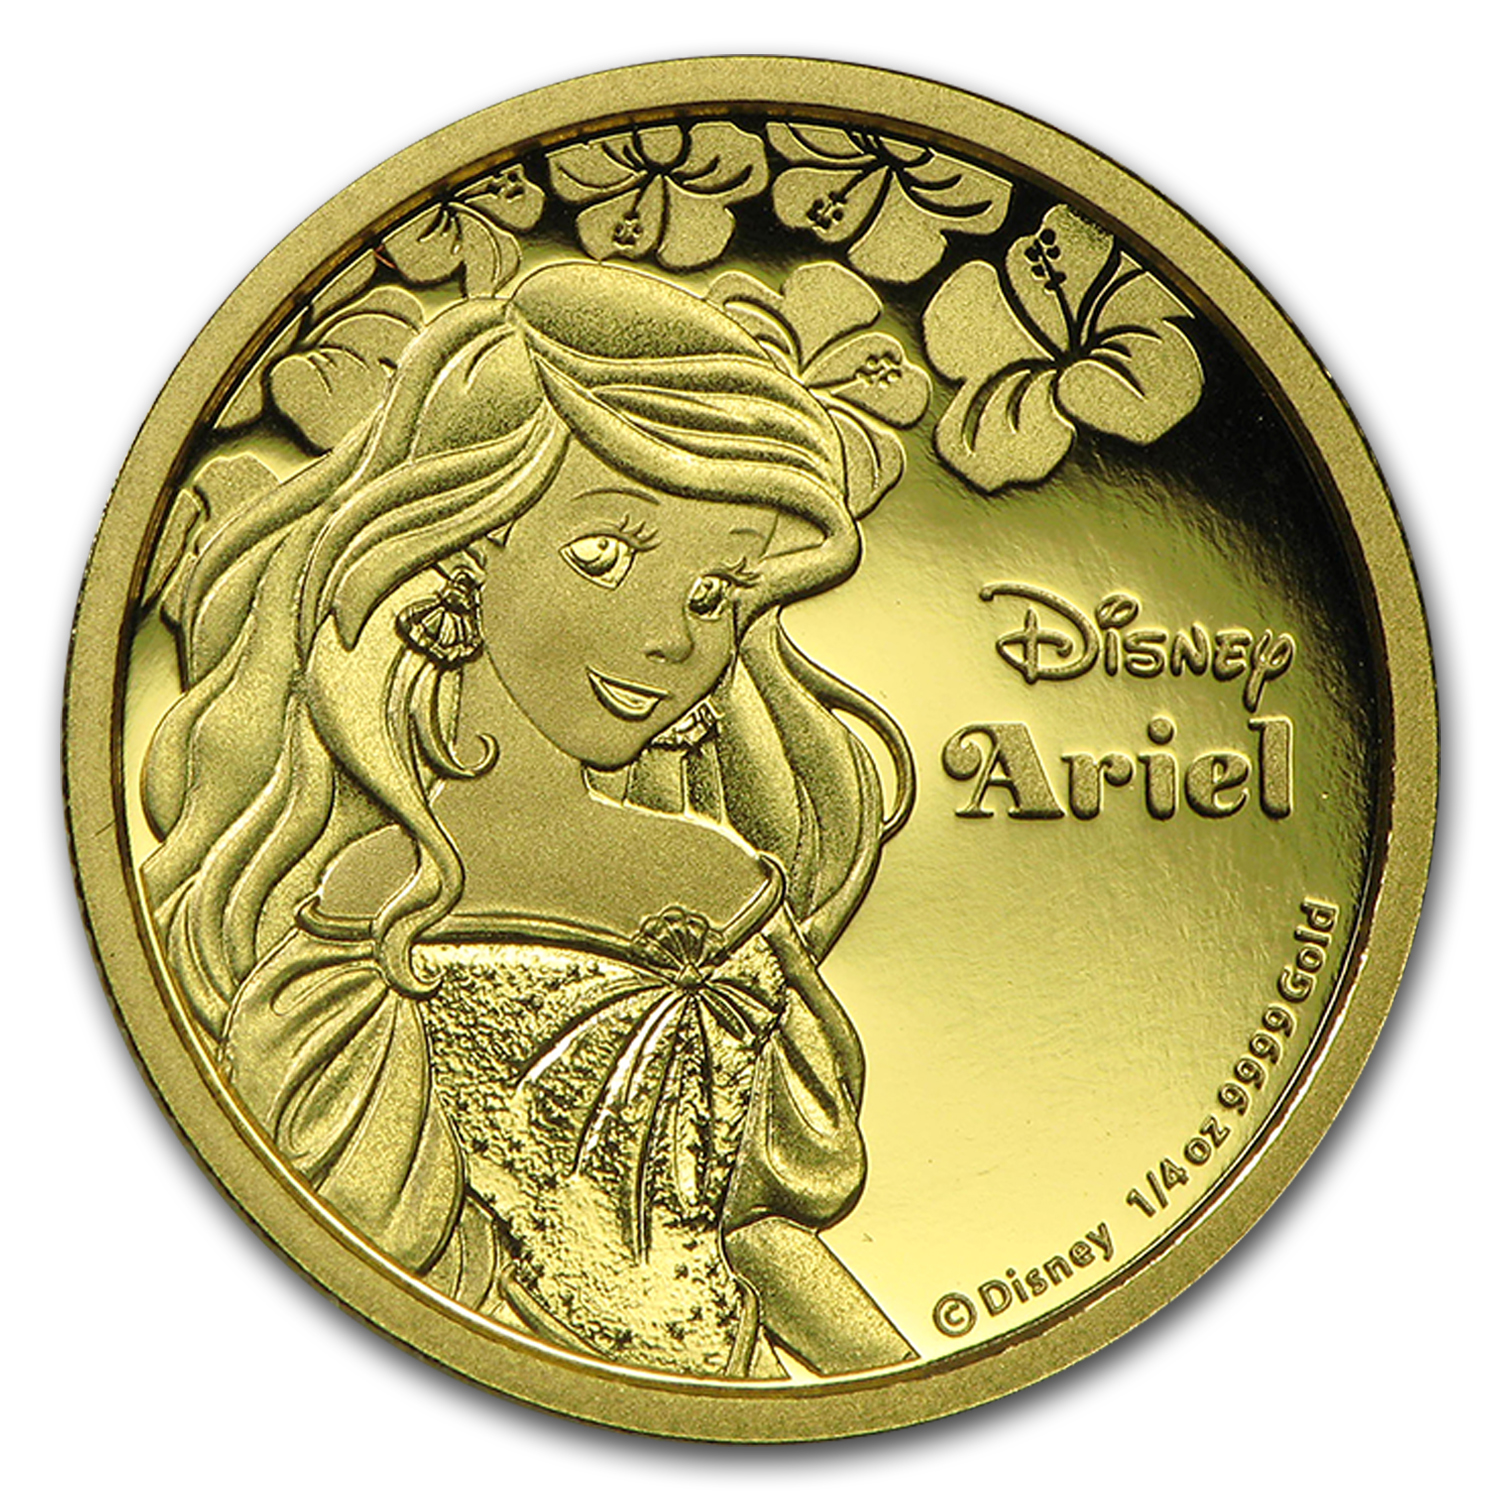 2015 Niue 1/4 oz Proof Gold $25 Disney Princess - Ariel